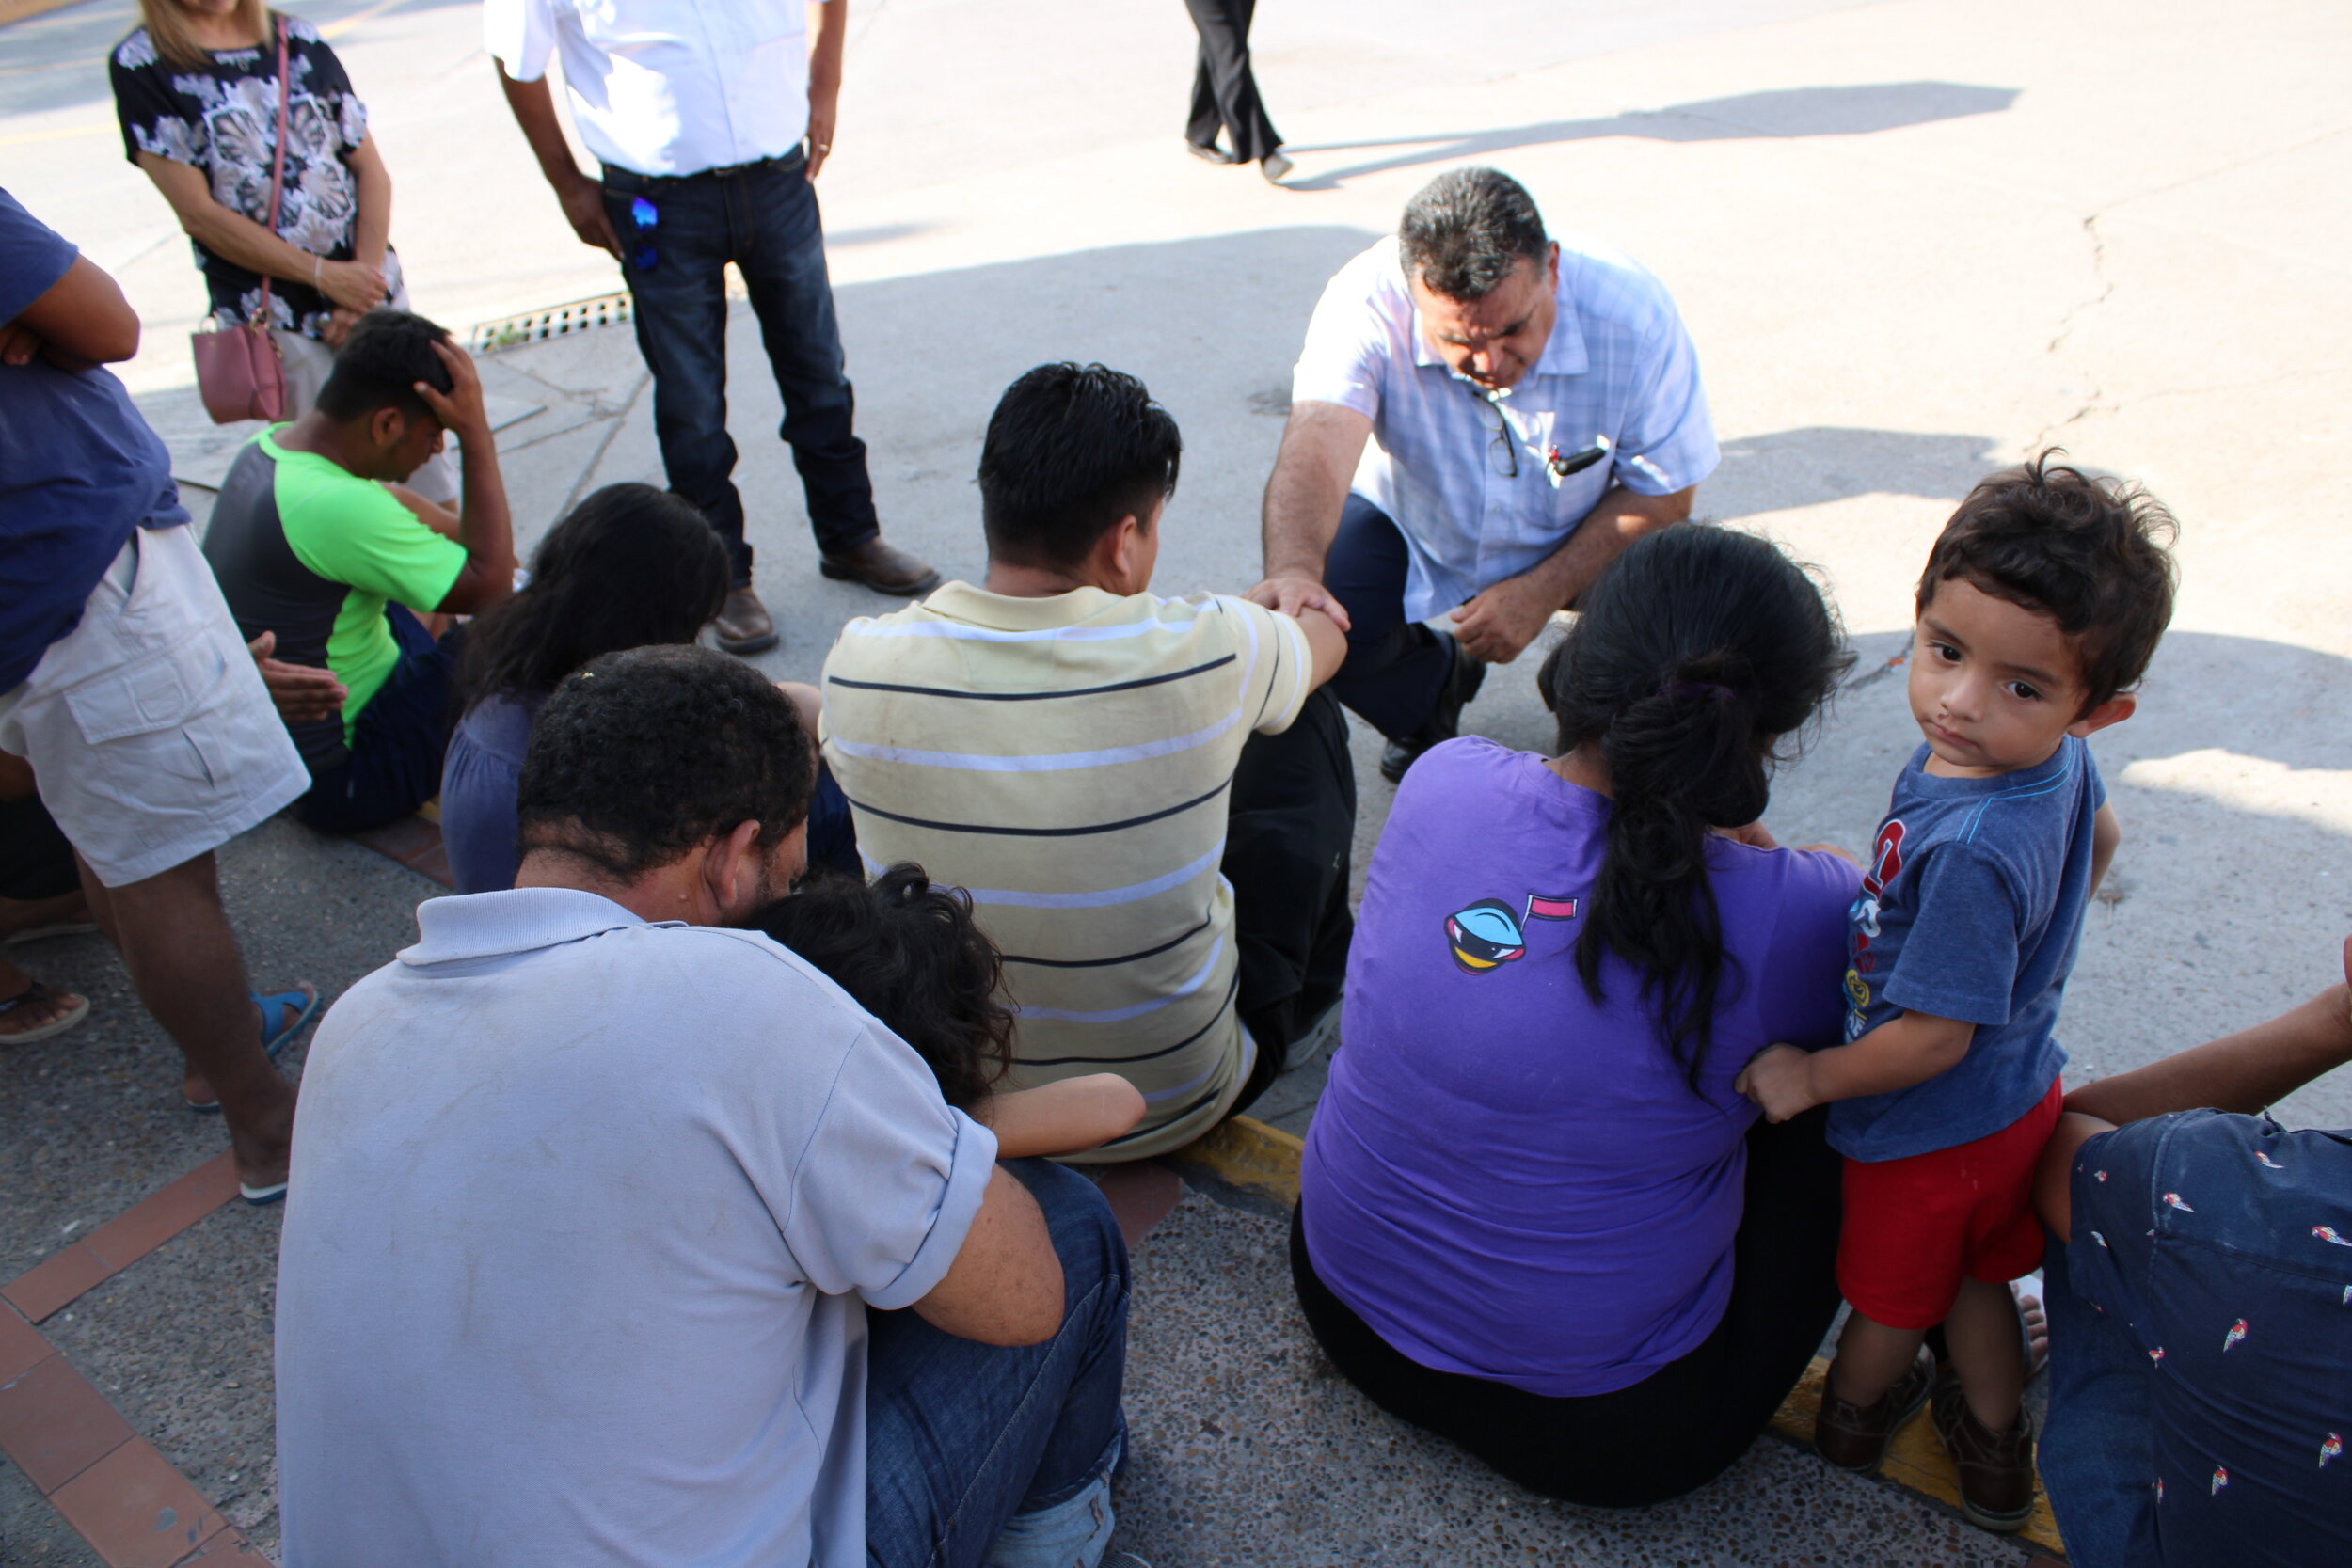 Pastor Rogelio Pérez of Iglesia Bautista Capernaum in Brownsville, Texas, ministered to asylum seekers at the U.S. border in Matamoros, Mexico, in August. Since then, the number of refugees camped near that border crossing has swelled from 500 to 4,000.